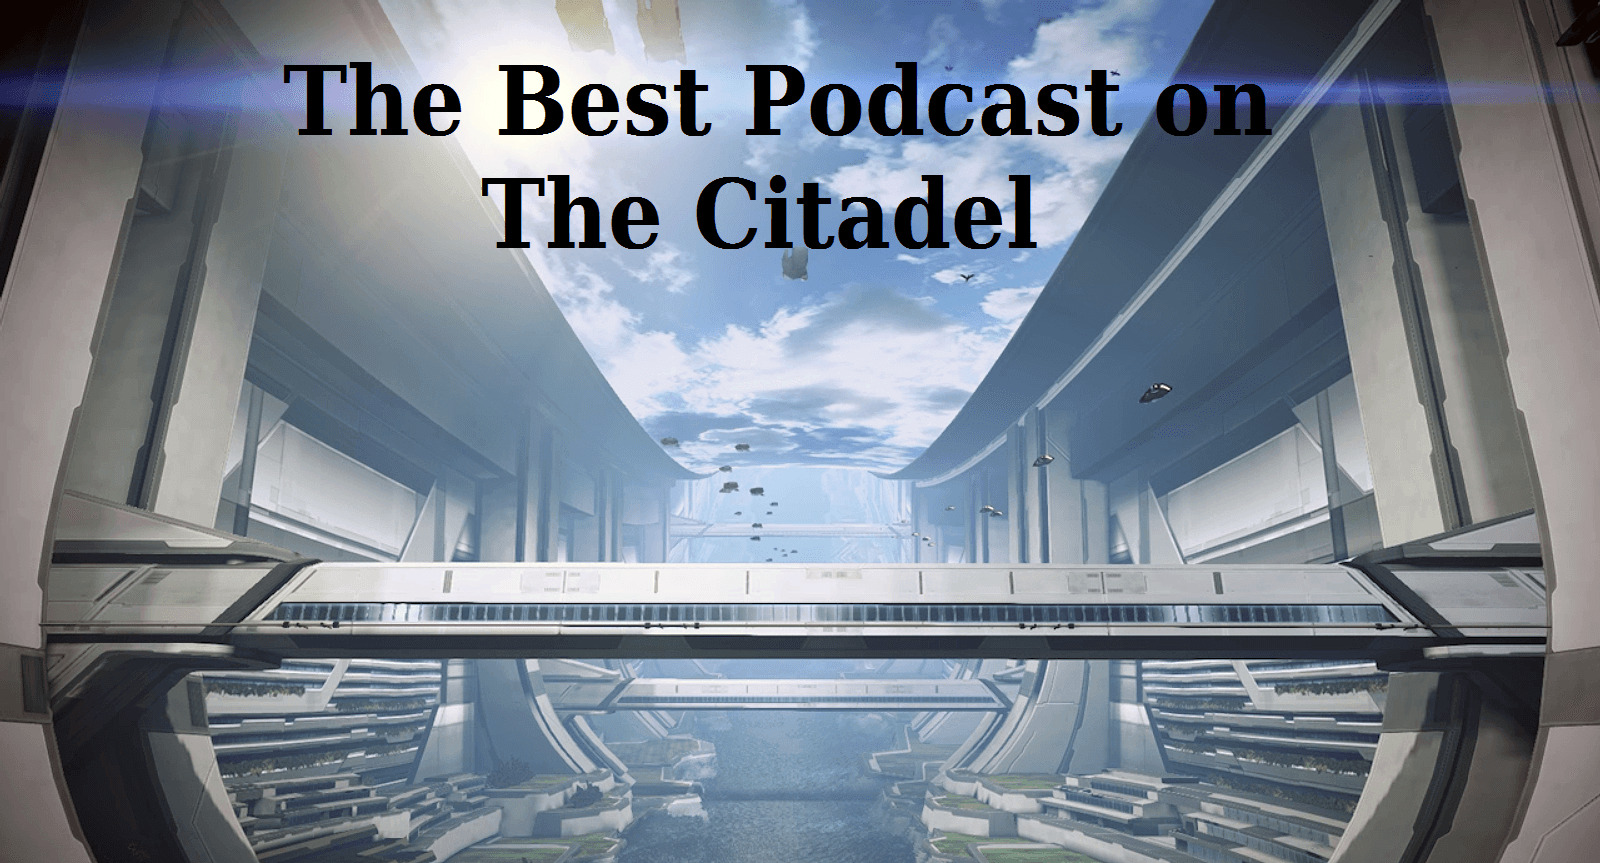 The Best Podcast on the Citadel, Ep. 29